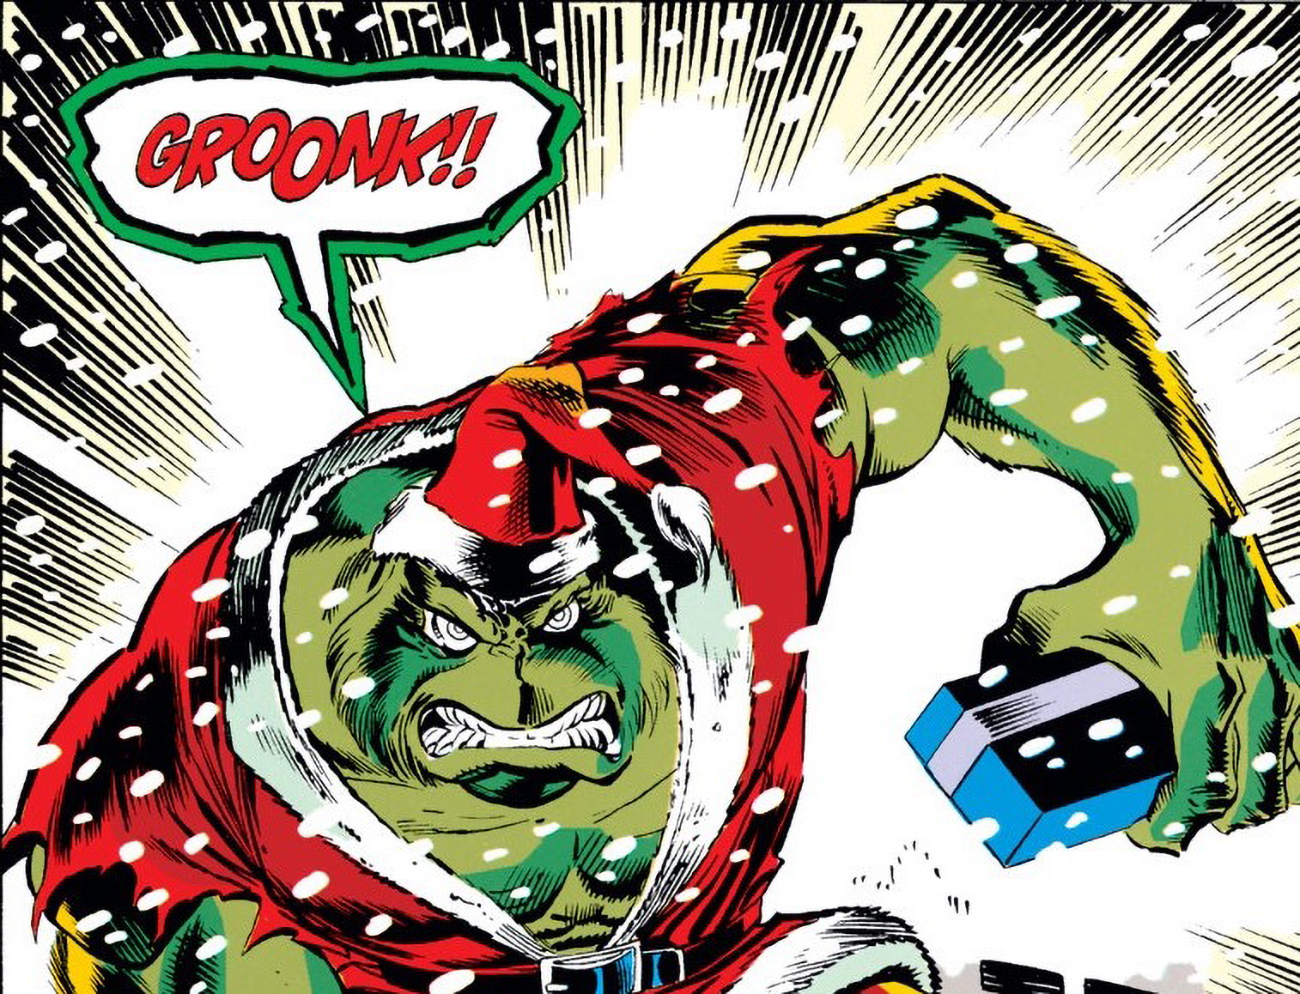 The Grinch not only exists in Marvel Comics, but fought Thor in 1992